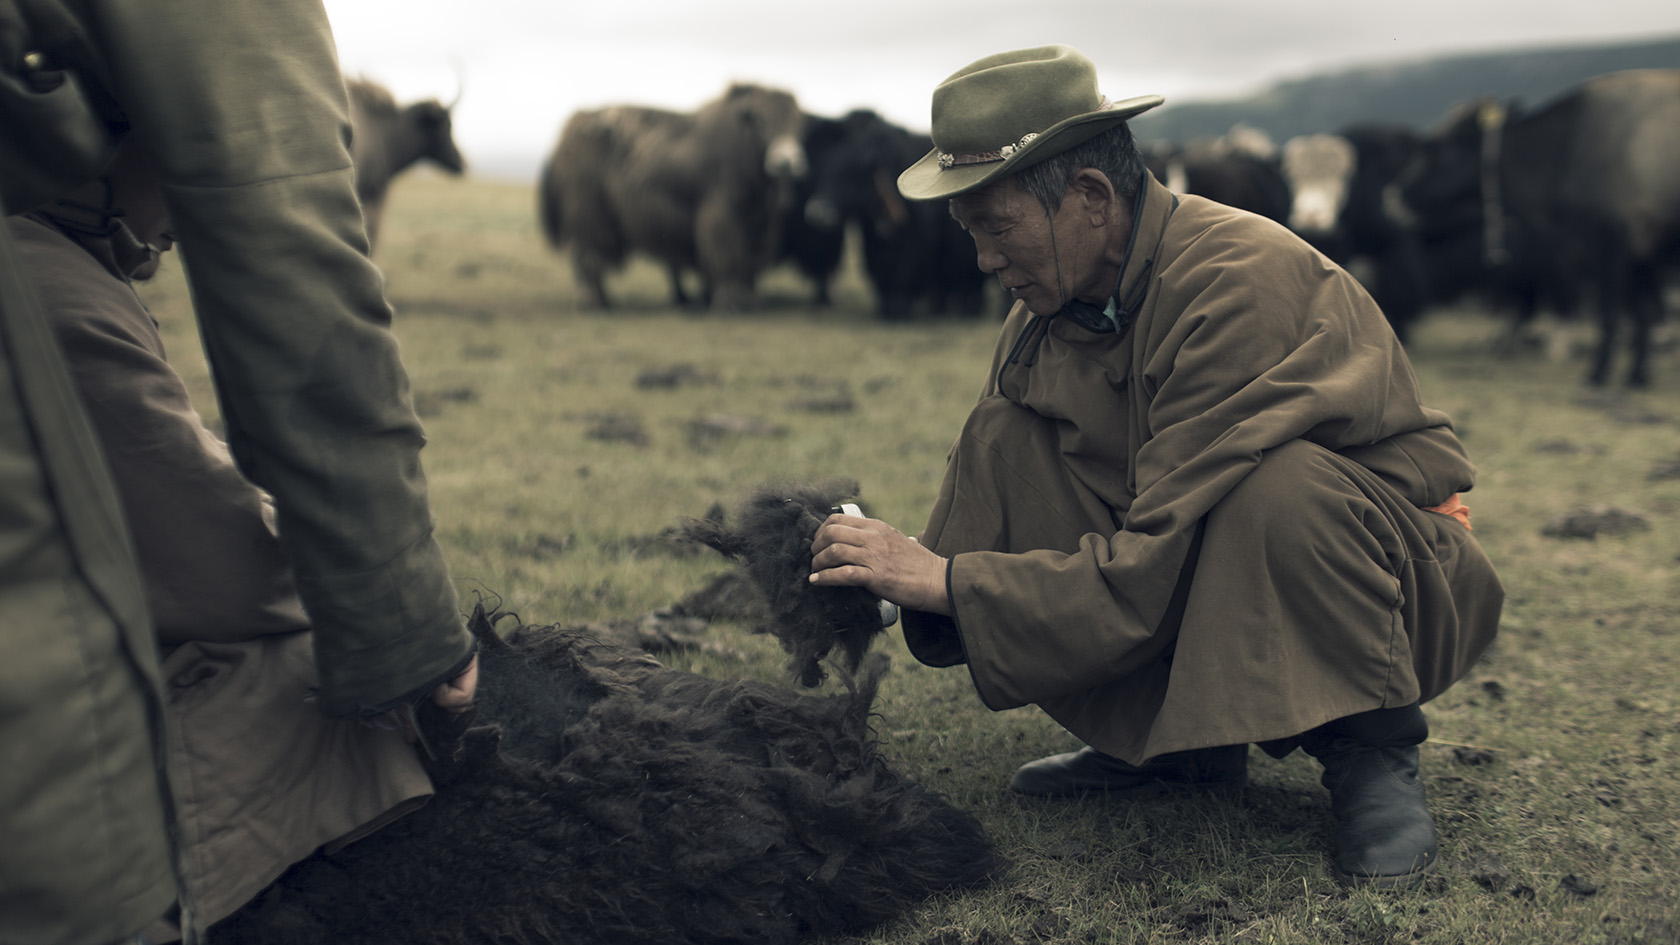 Hand-combing the yak individually, once a year, when the animals shed their winter coats.